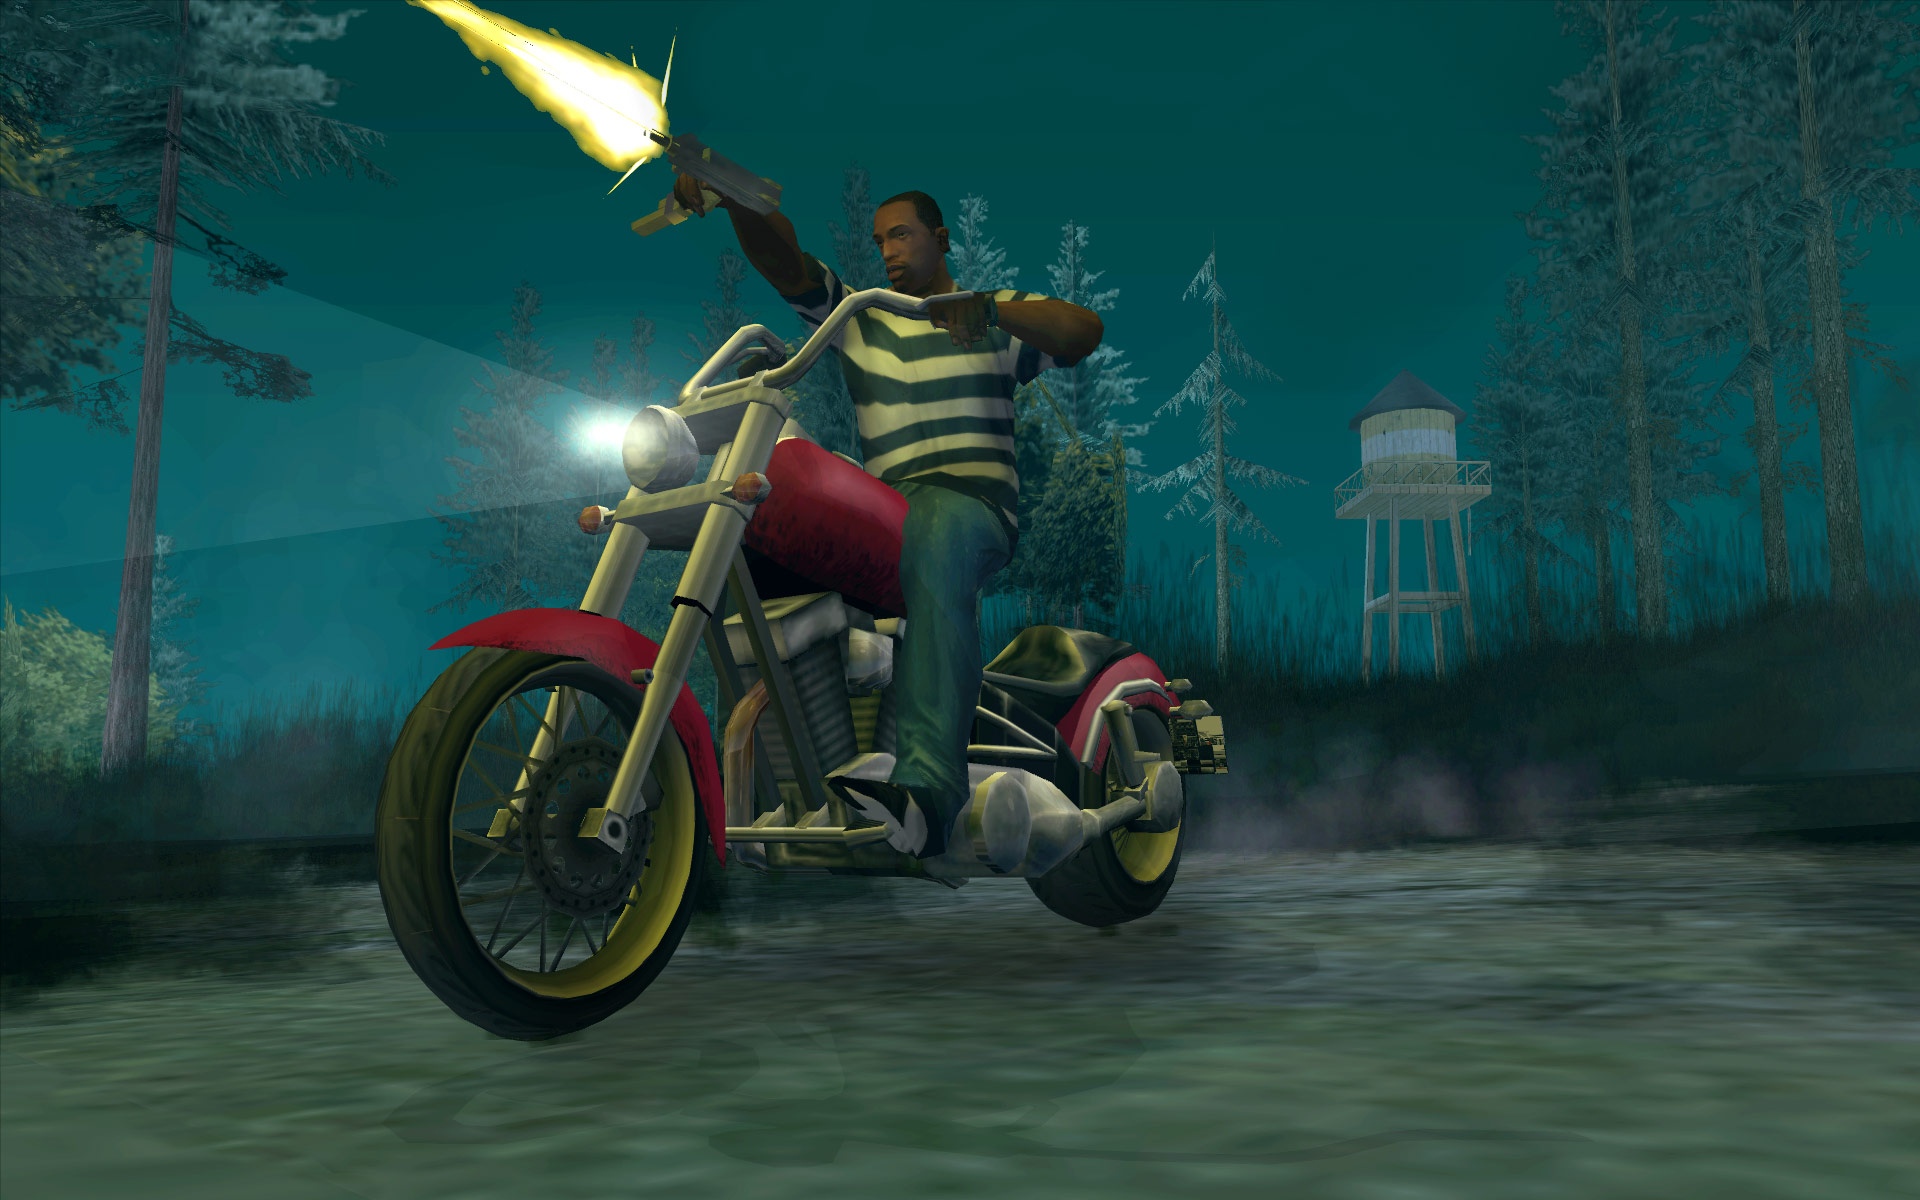 Grand Theft Auto: San Andreas - CJ rides a red motorcycle through a dark wood, shooting a gun with one hand